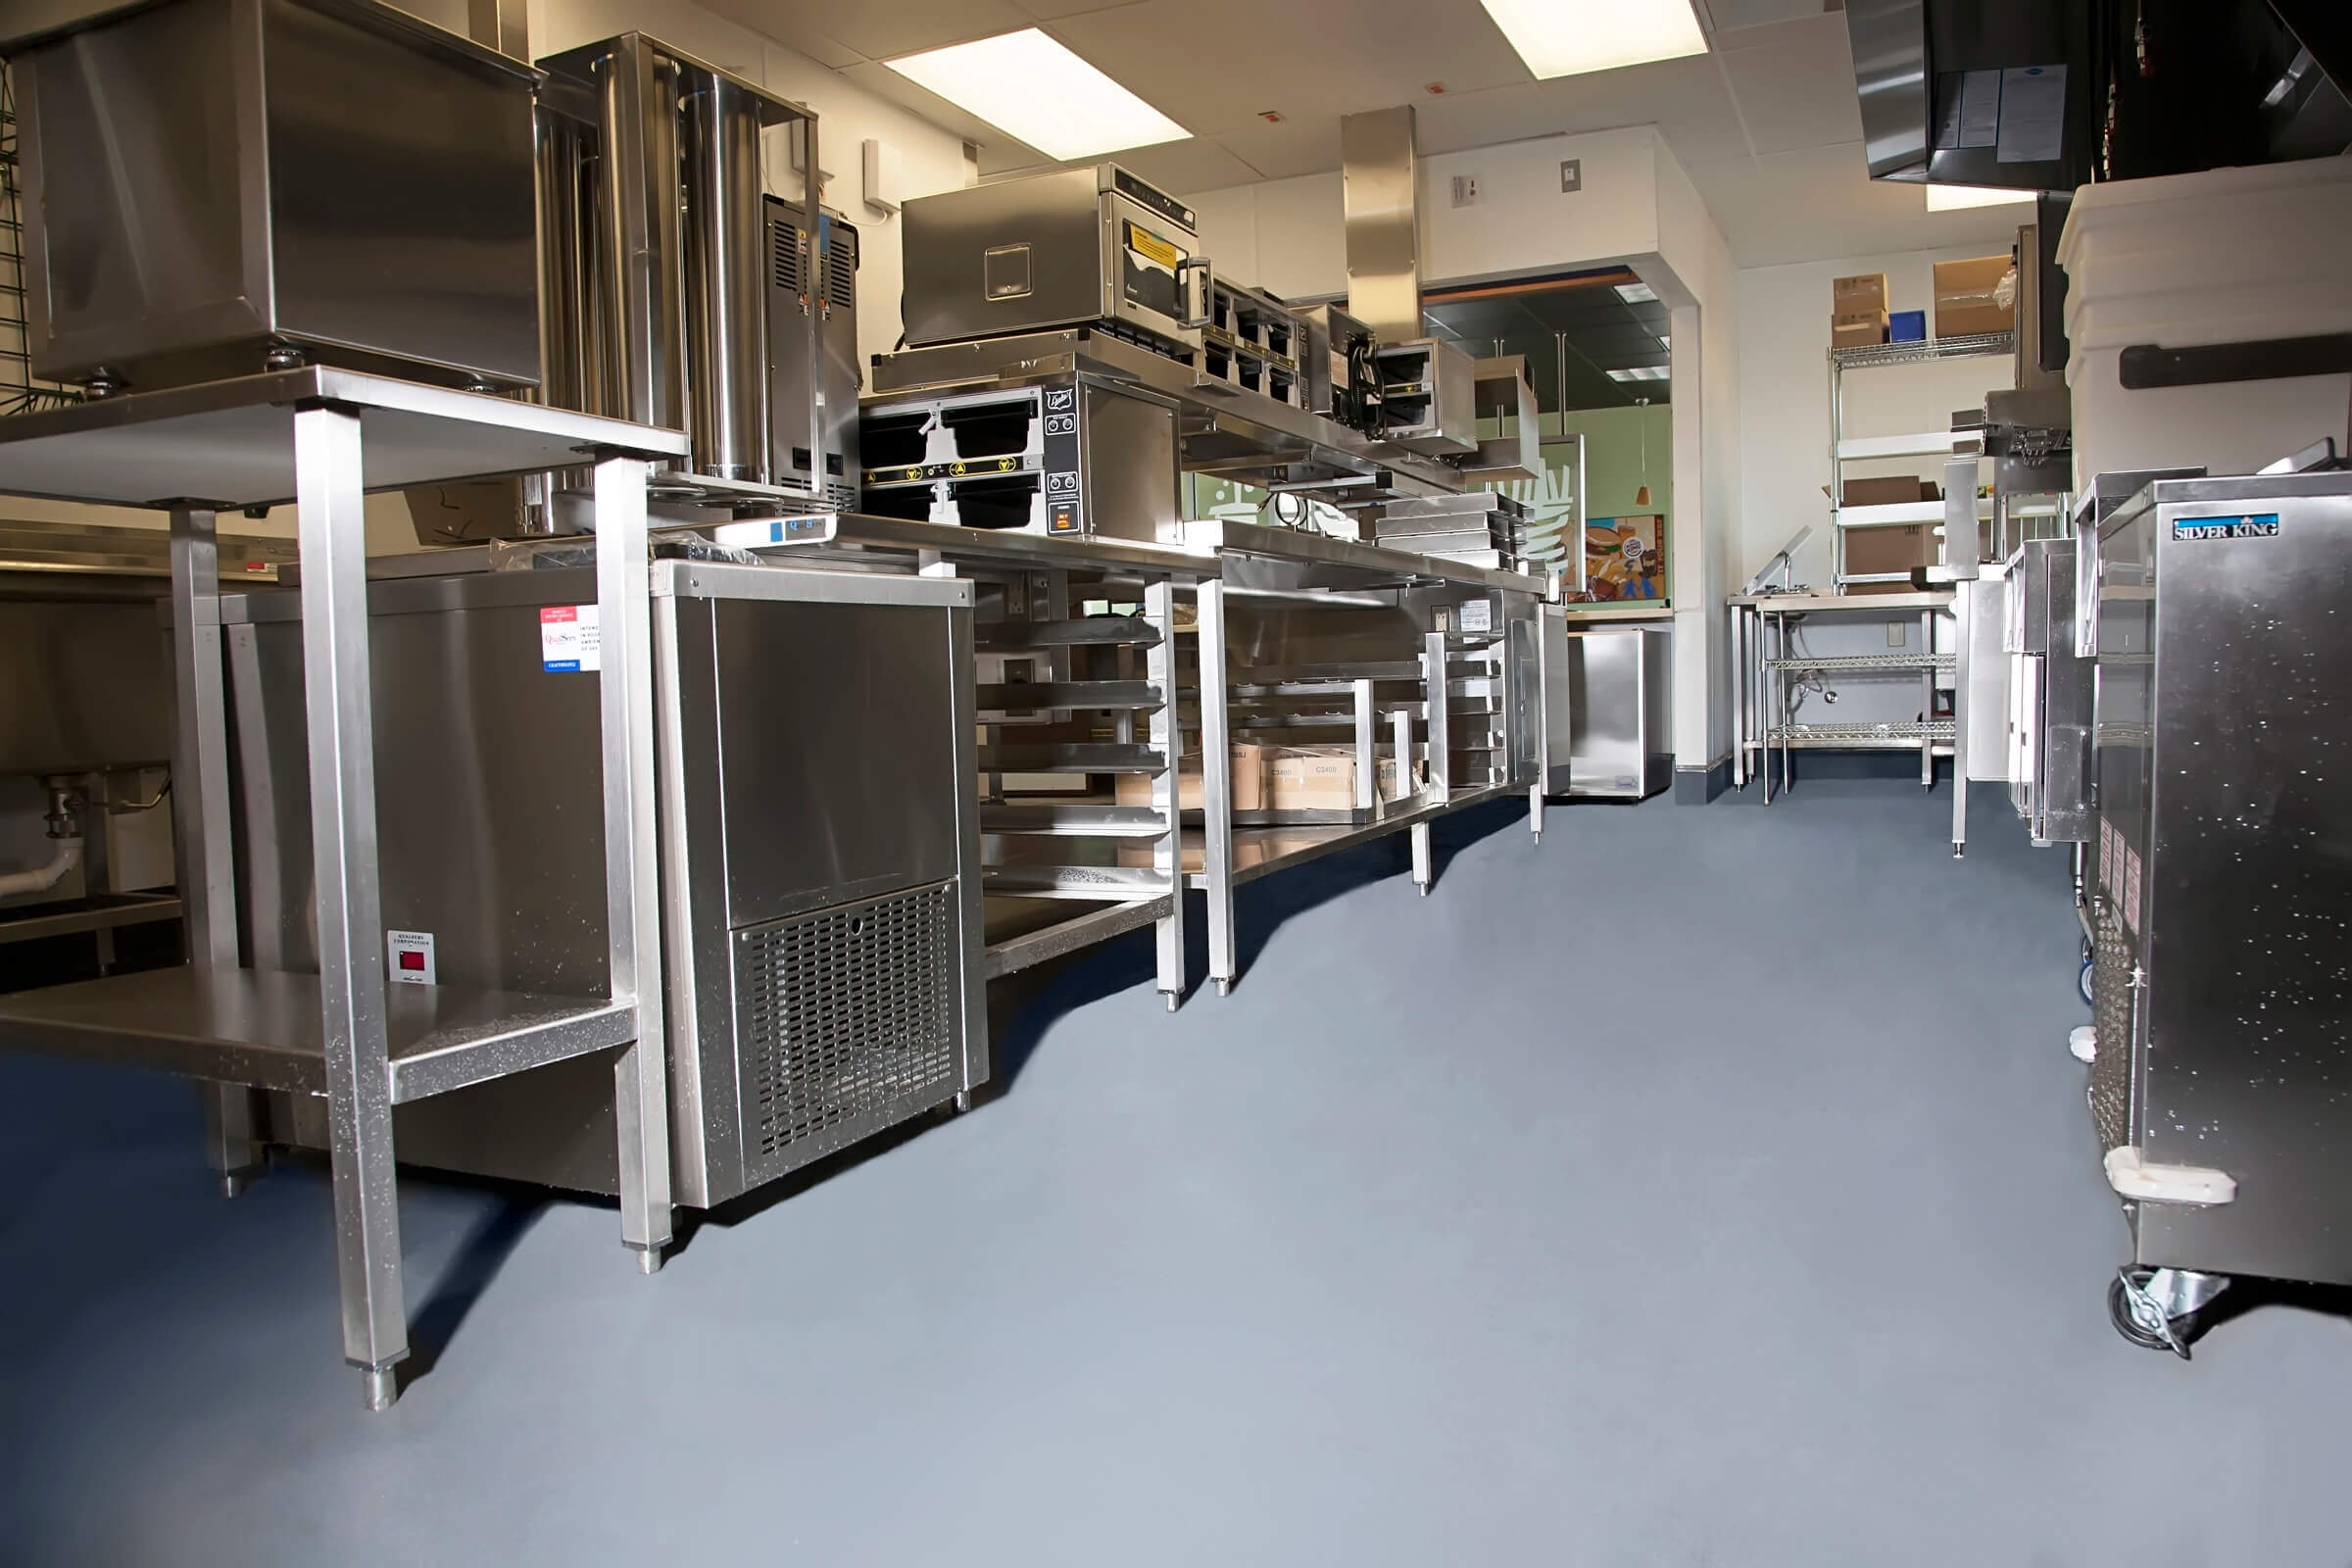 Restaurant Kitchen Pics commercial kitchen flooring epoxy & stained concrete| industrial